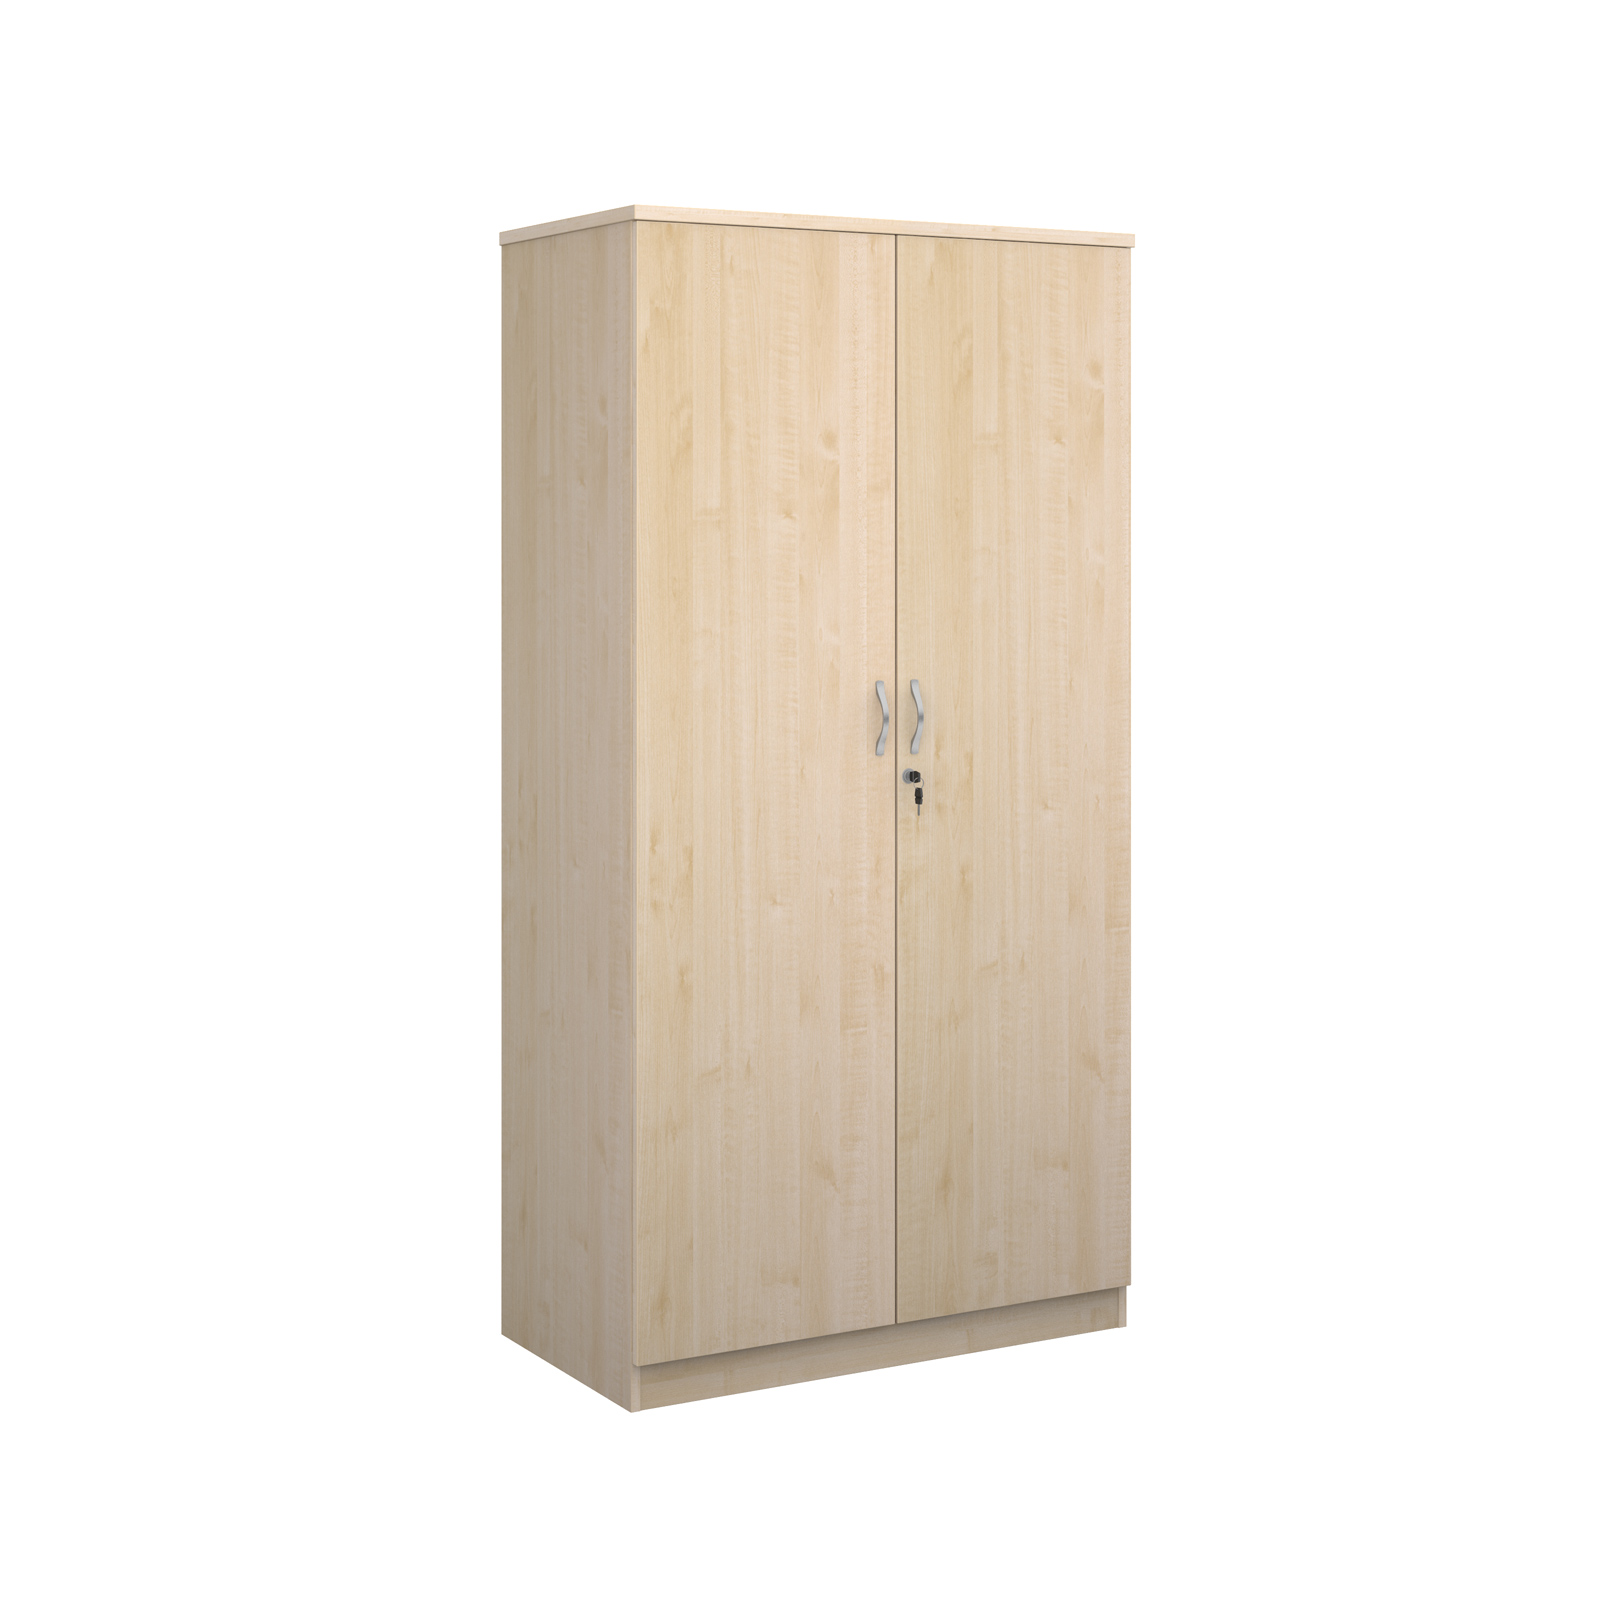 Deluxe double door cupboard 2000mm high with 4 shelves - maple